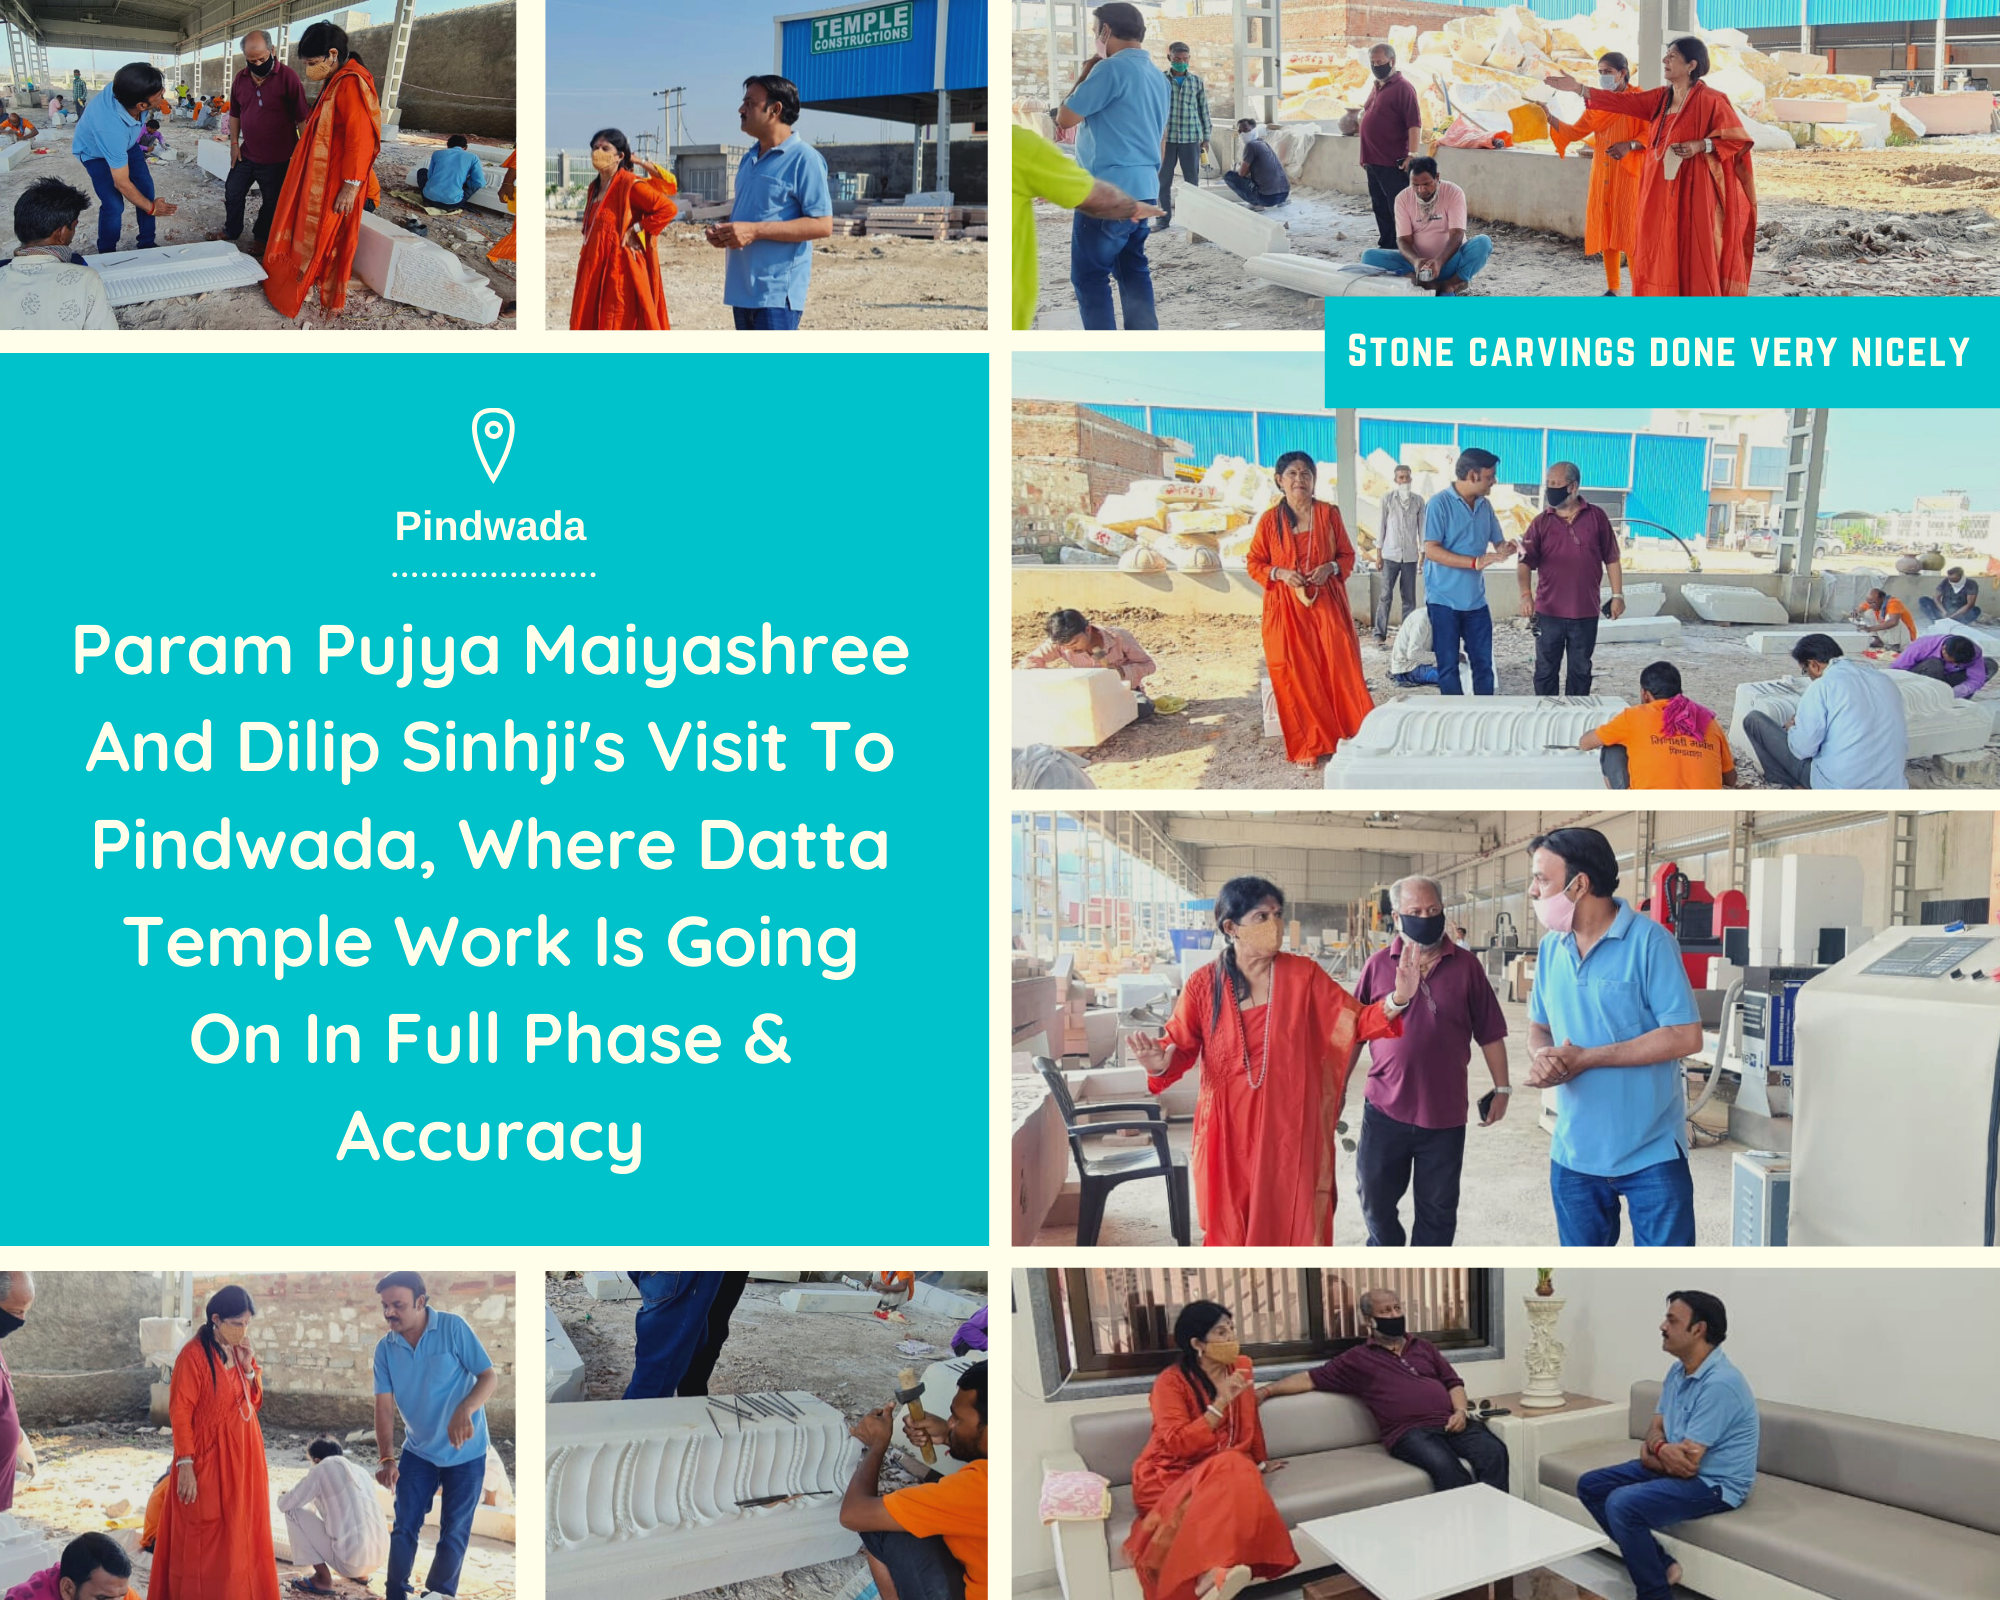 Param Pujya Maiyashree And Dilip Sinhji Visited Pindwada, Where Datta Temple Work Is Going On In Full Phase And Accuracy